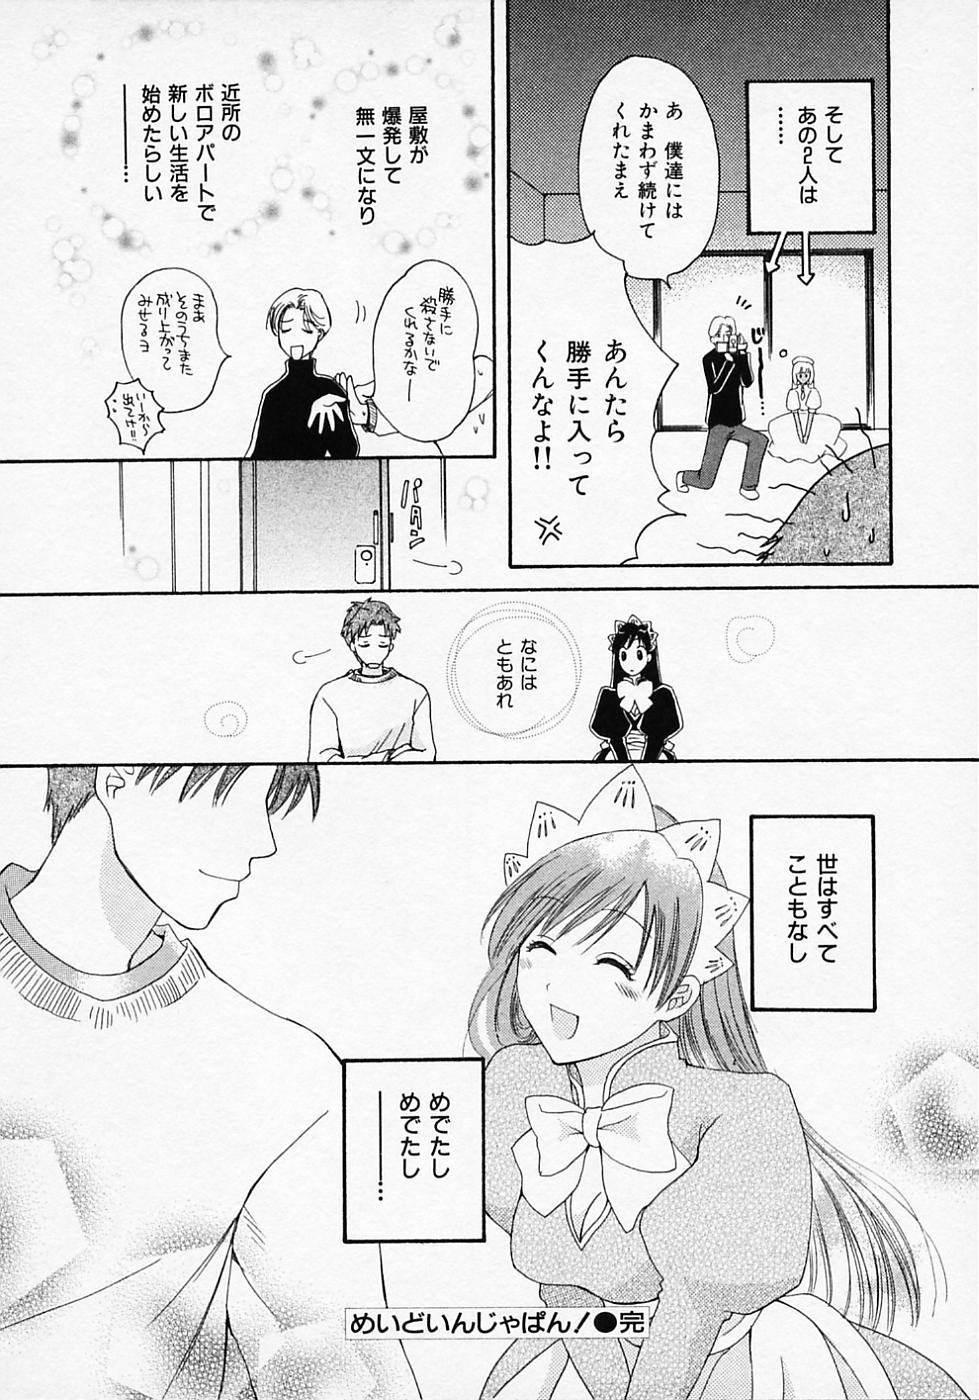 Maid In Japan 129